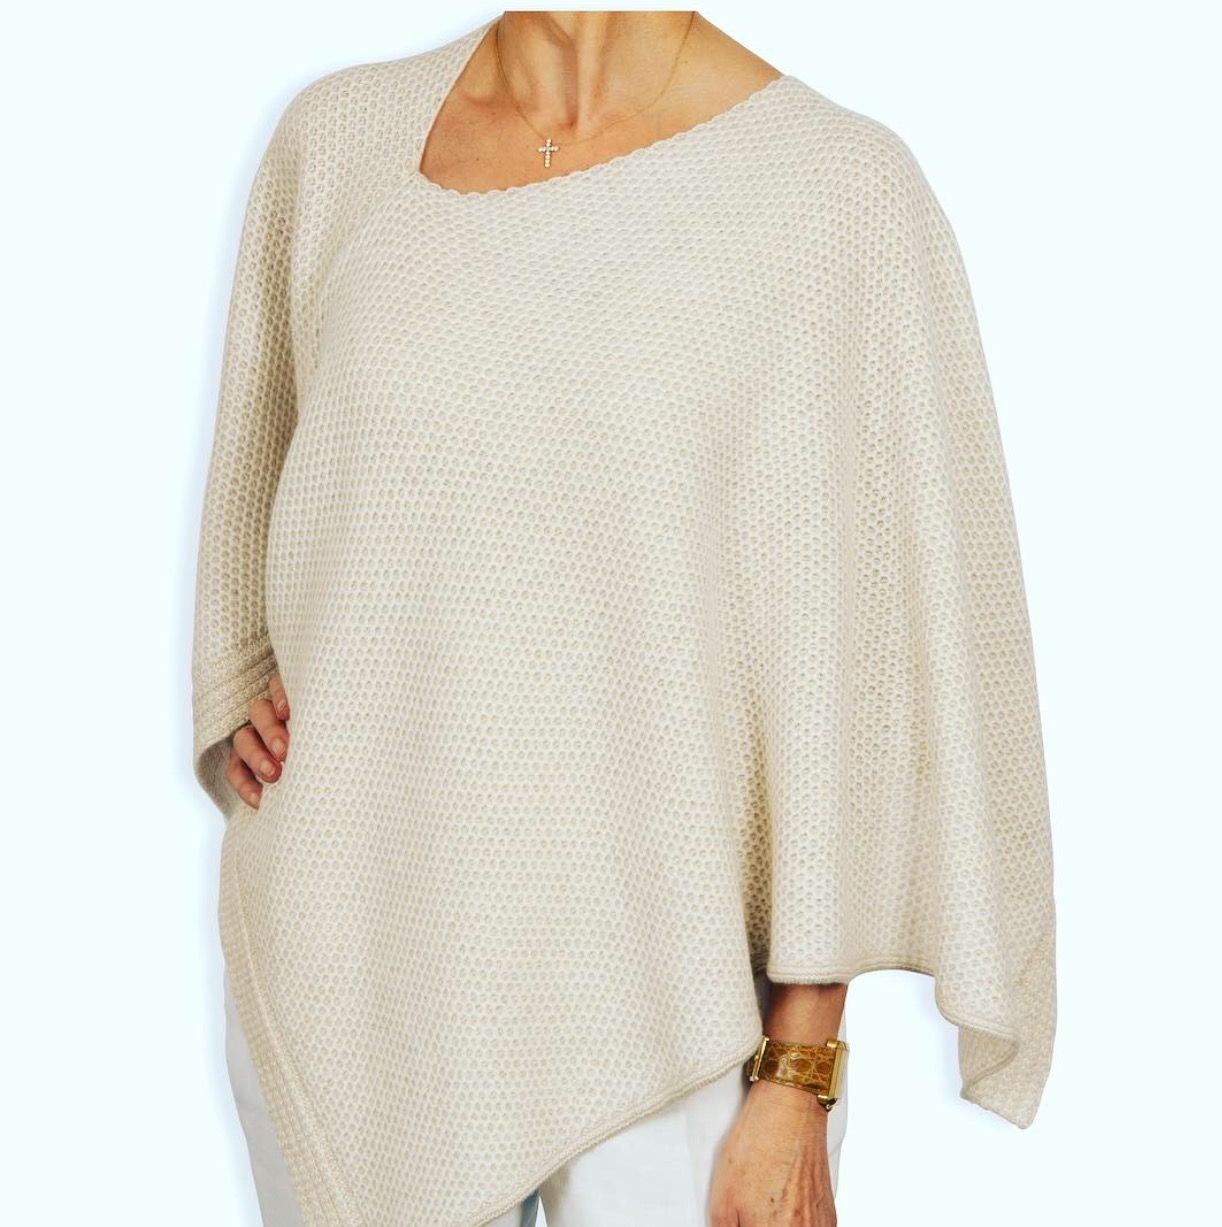 745c03ff5 Boxy Style Cashmere Poncho in Natural Honeycomb  catherinerobinsoncashmere.com